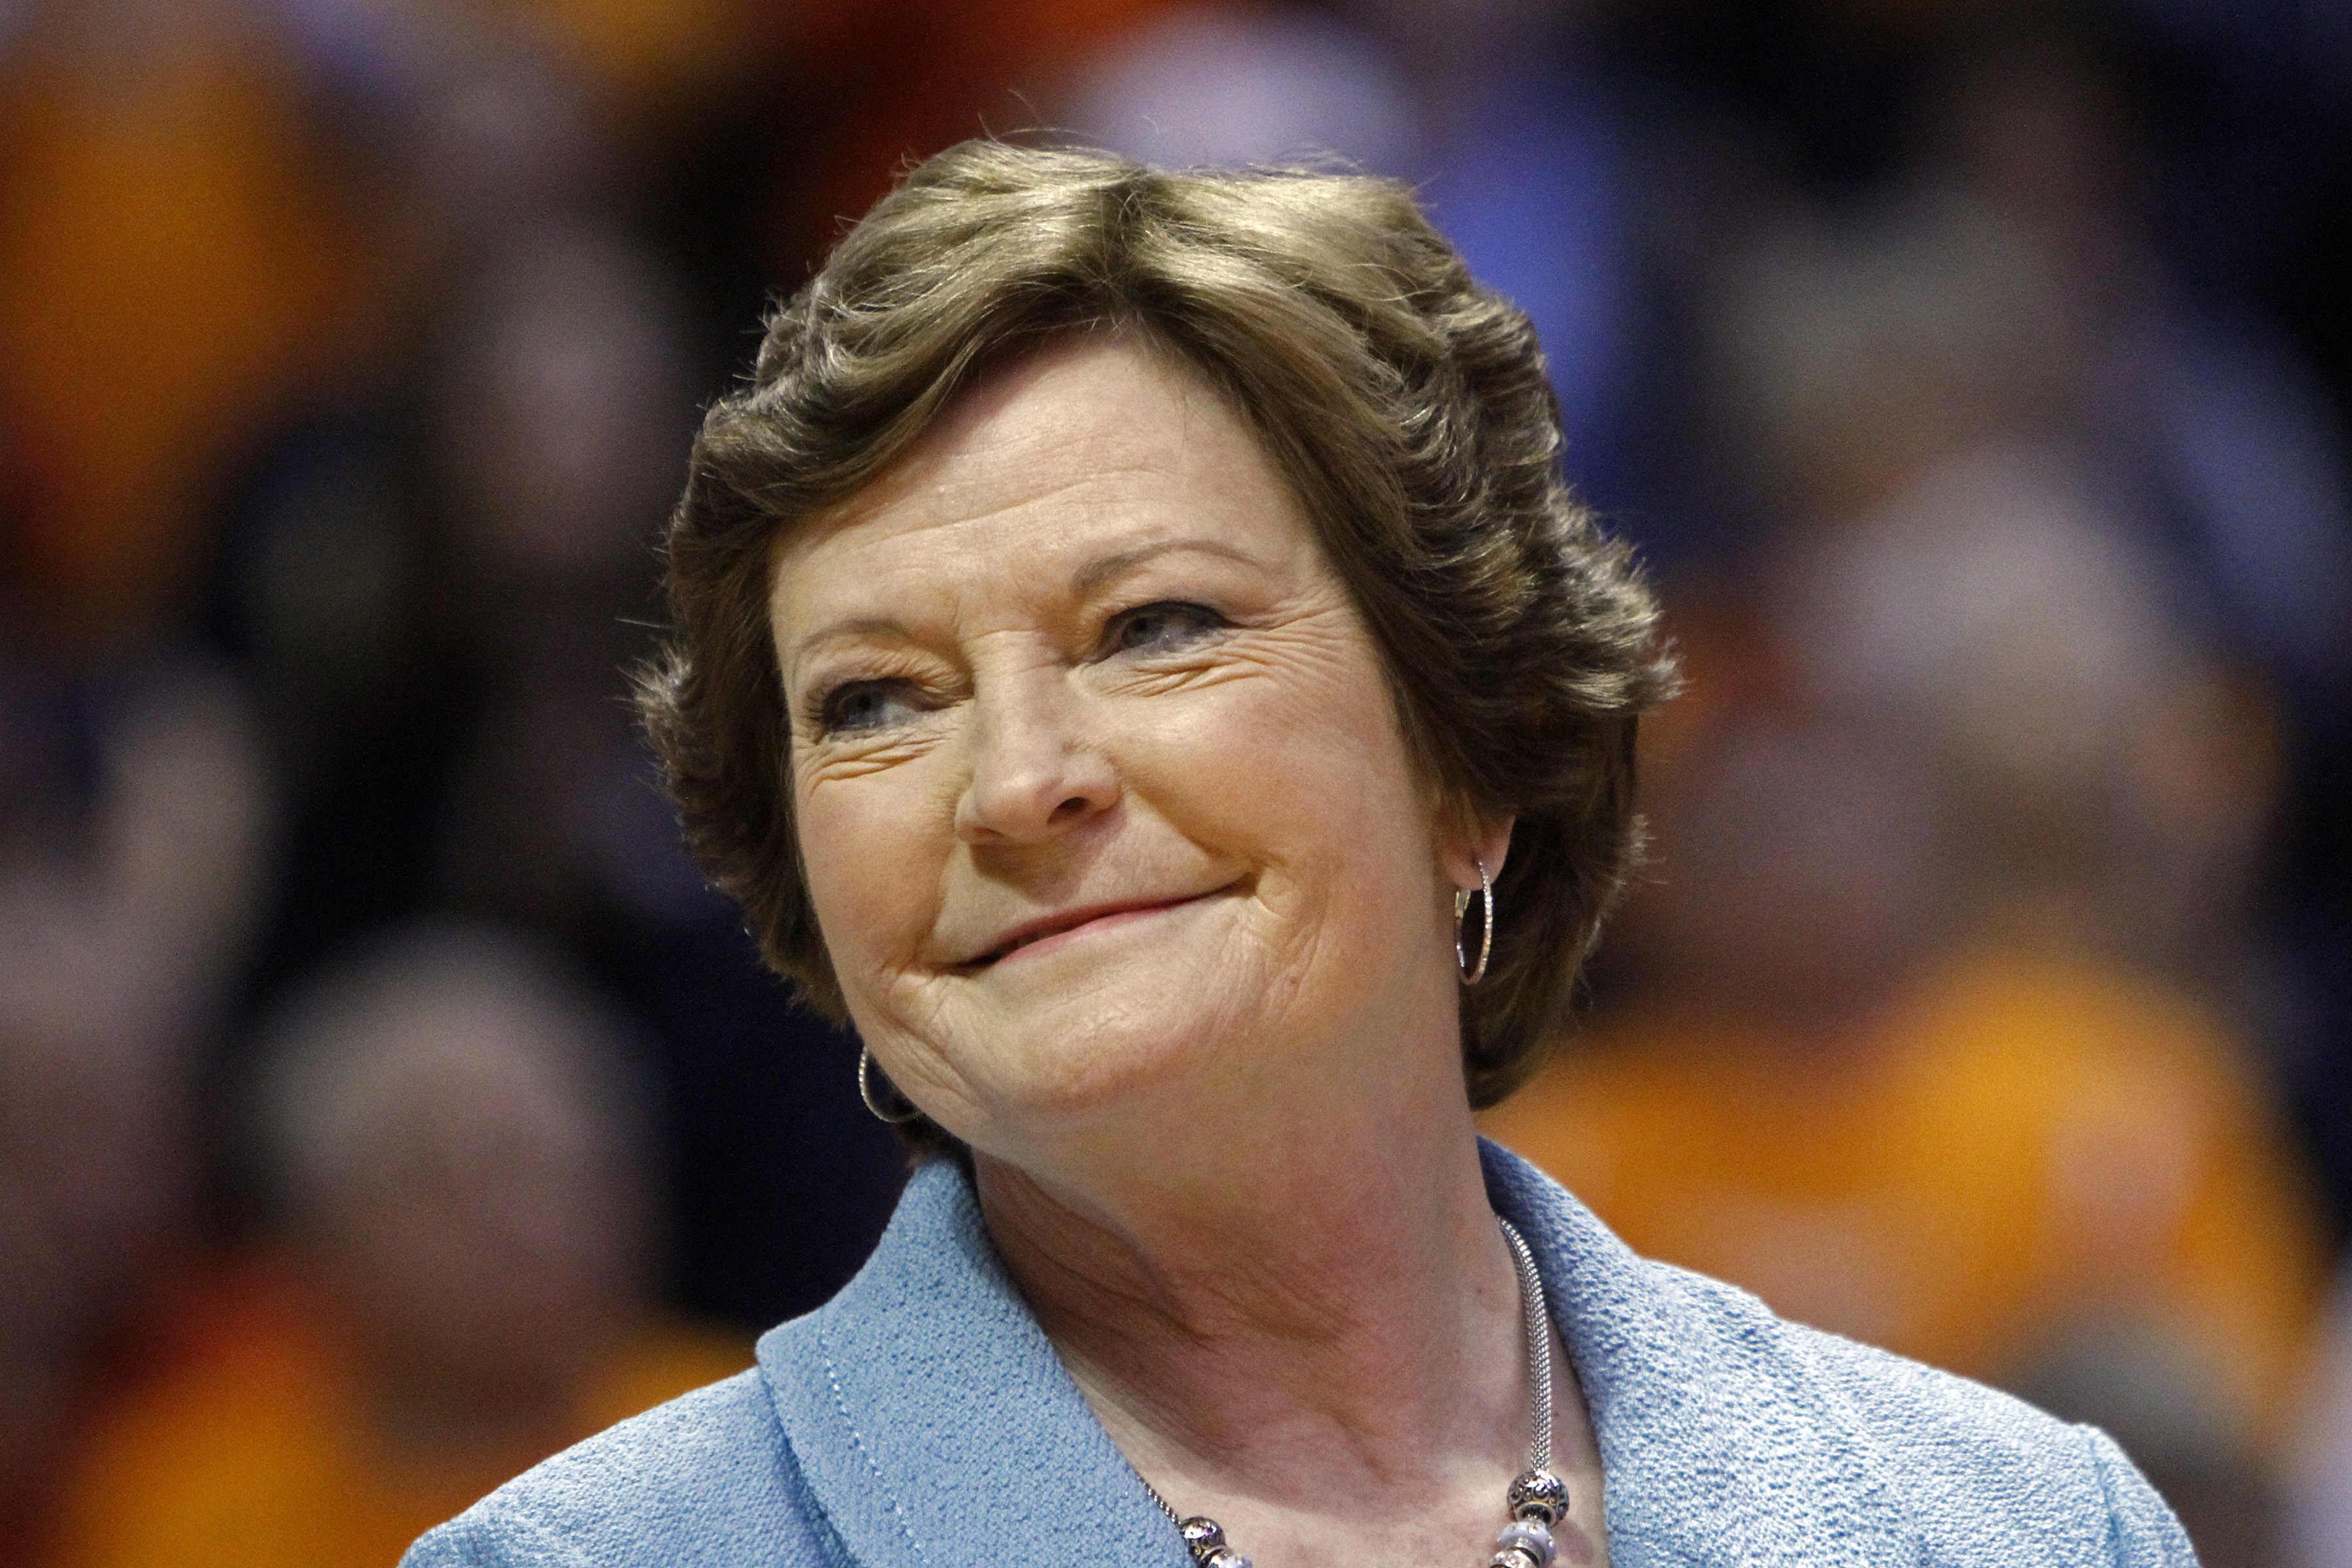 Former Tennessee women's basketball coach Pat Summitt was diagnosed with Alzheimer's in 2011. (AP)